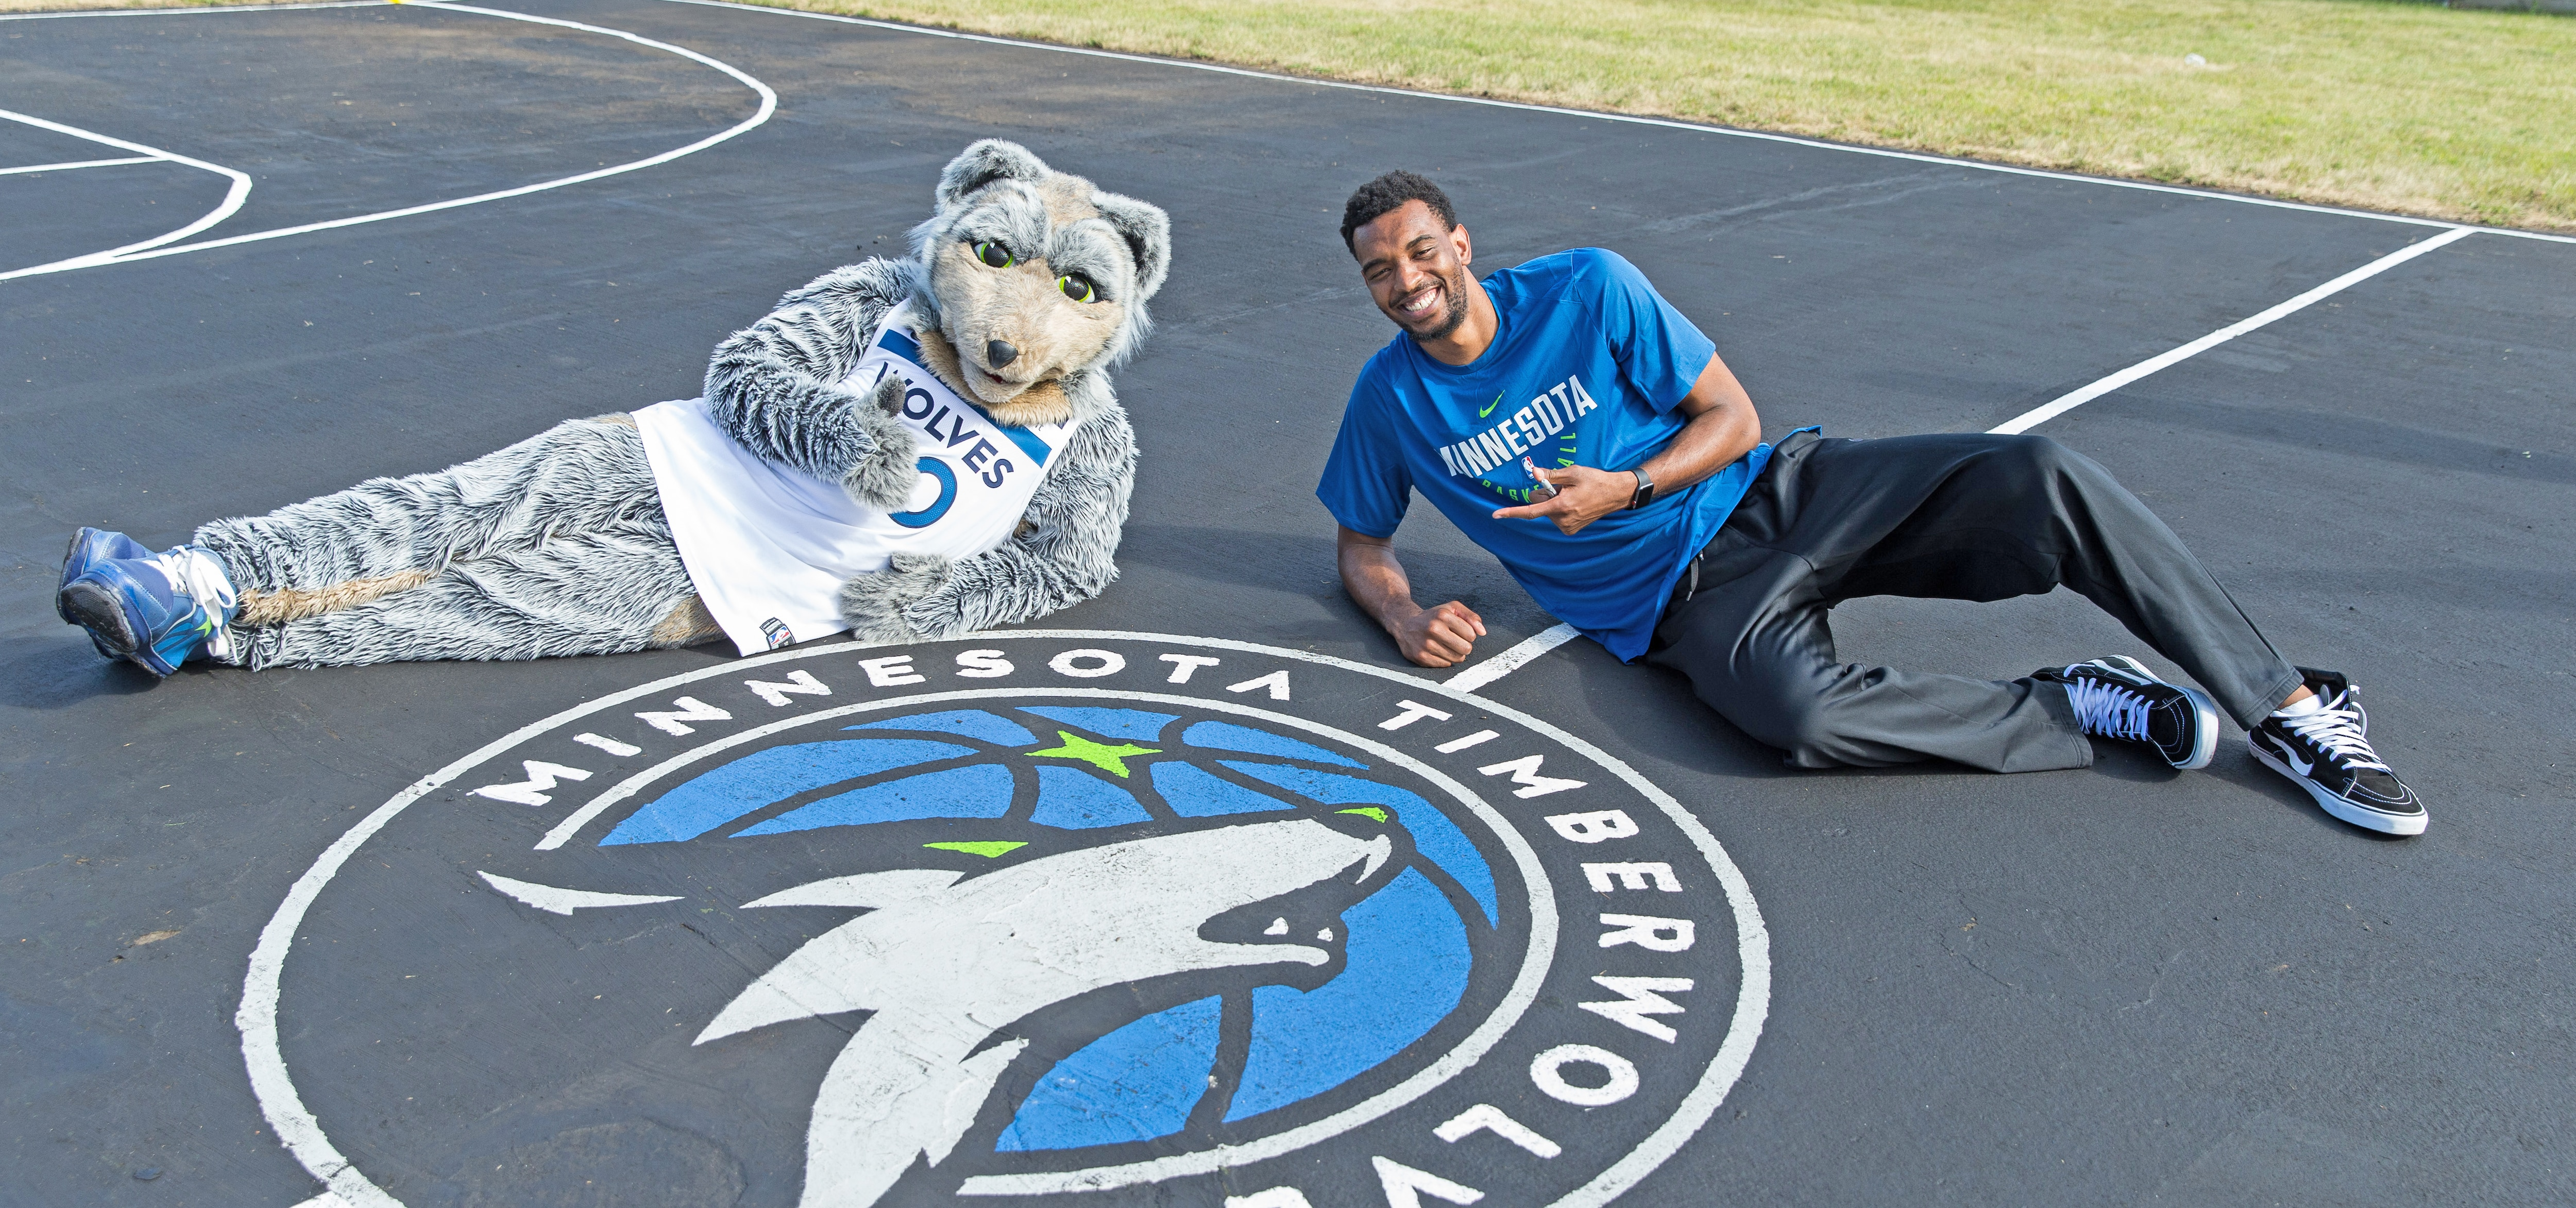 Minnesota Timberwolves FastBreak Foundation and U.S. Bank Unveil Refurbished Courts in Hastings